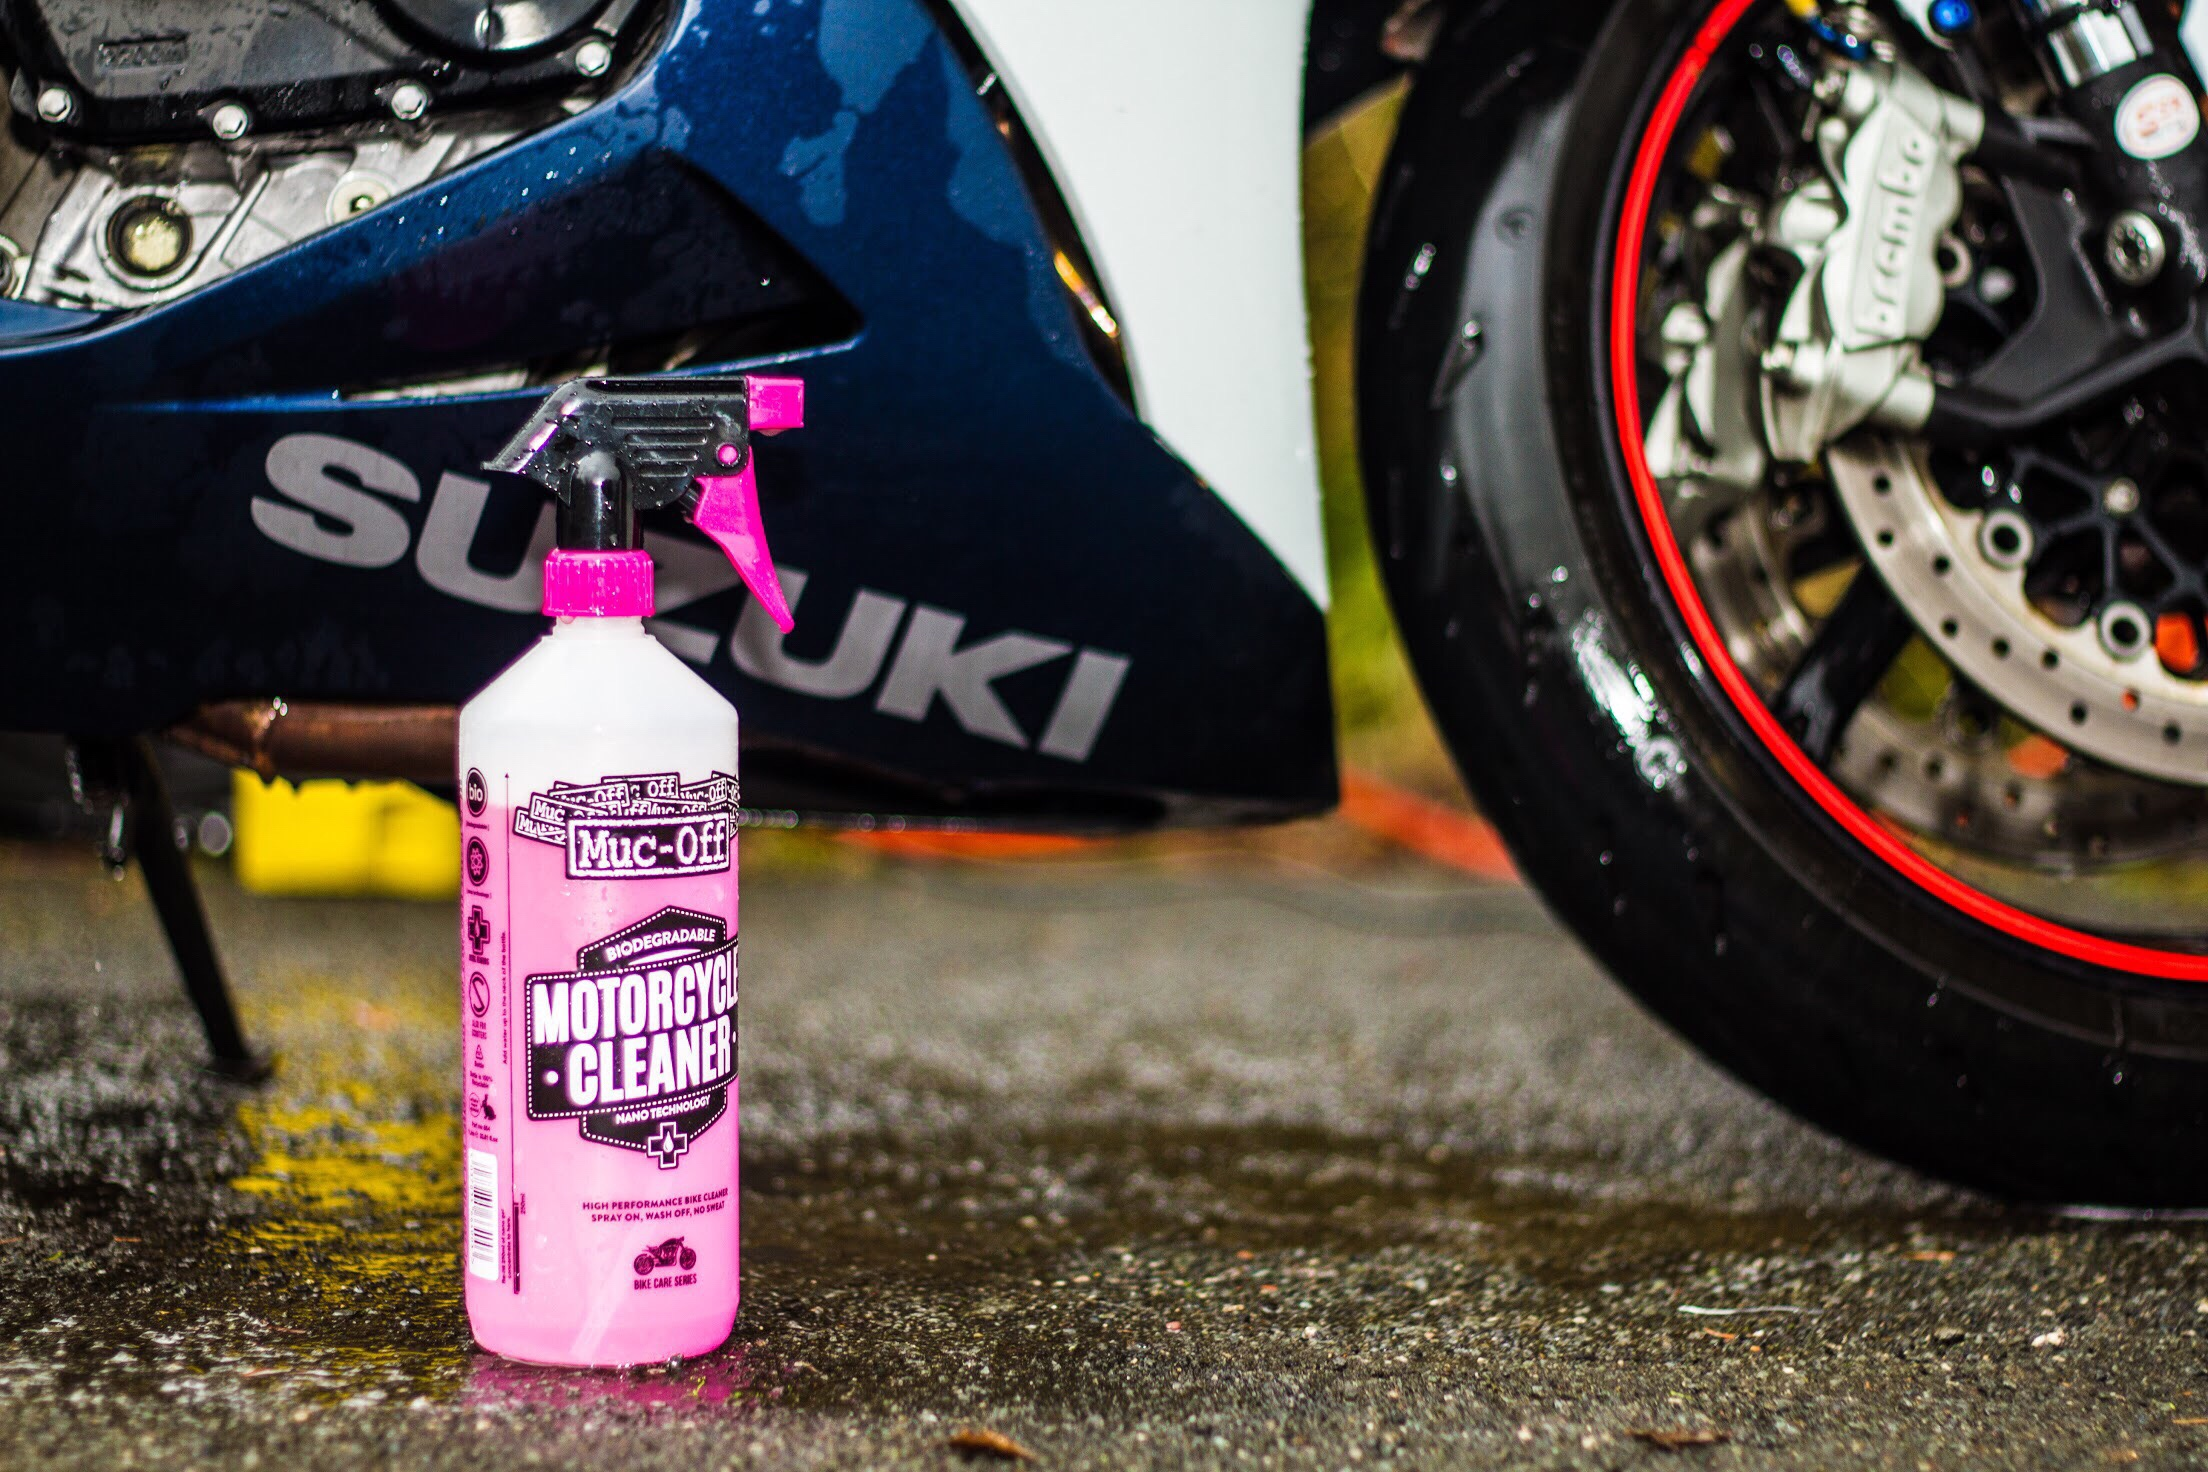 Muc-off Nanotec Motorcycle cleaner review